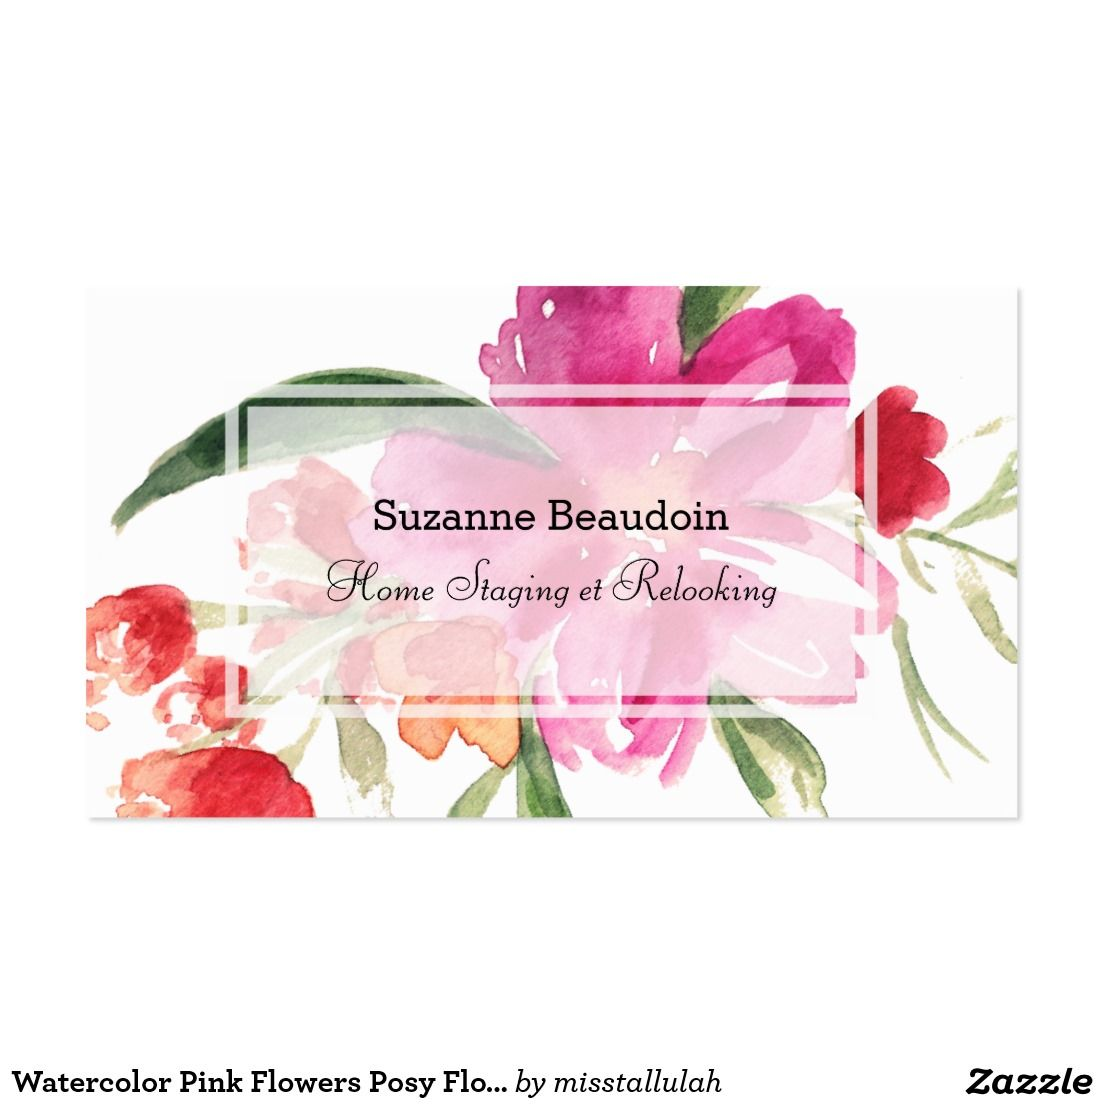 Watercolor Pink Flowers Posy Floral Business Card | The Little Lash ...